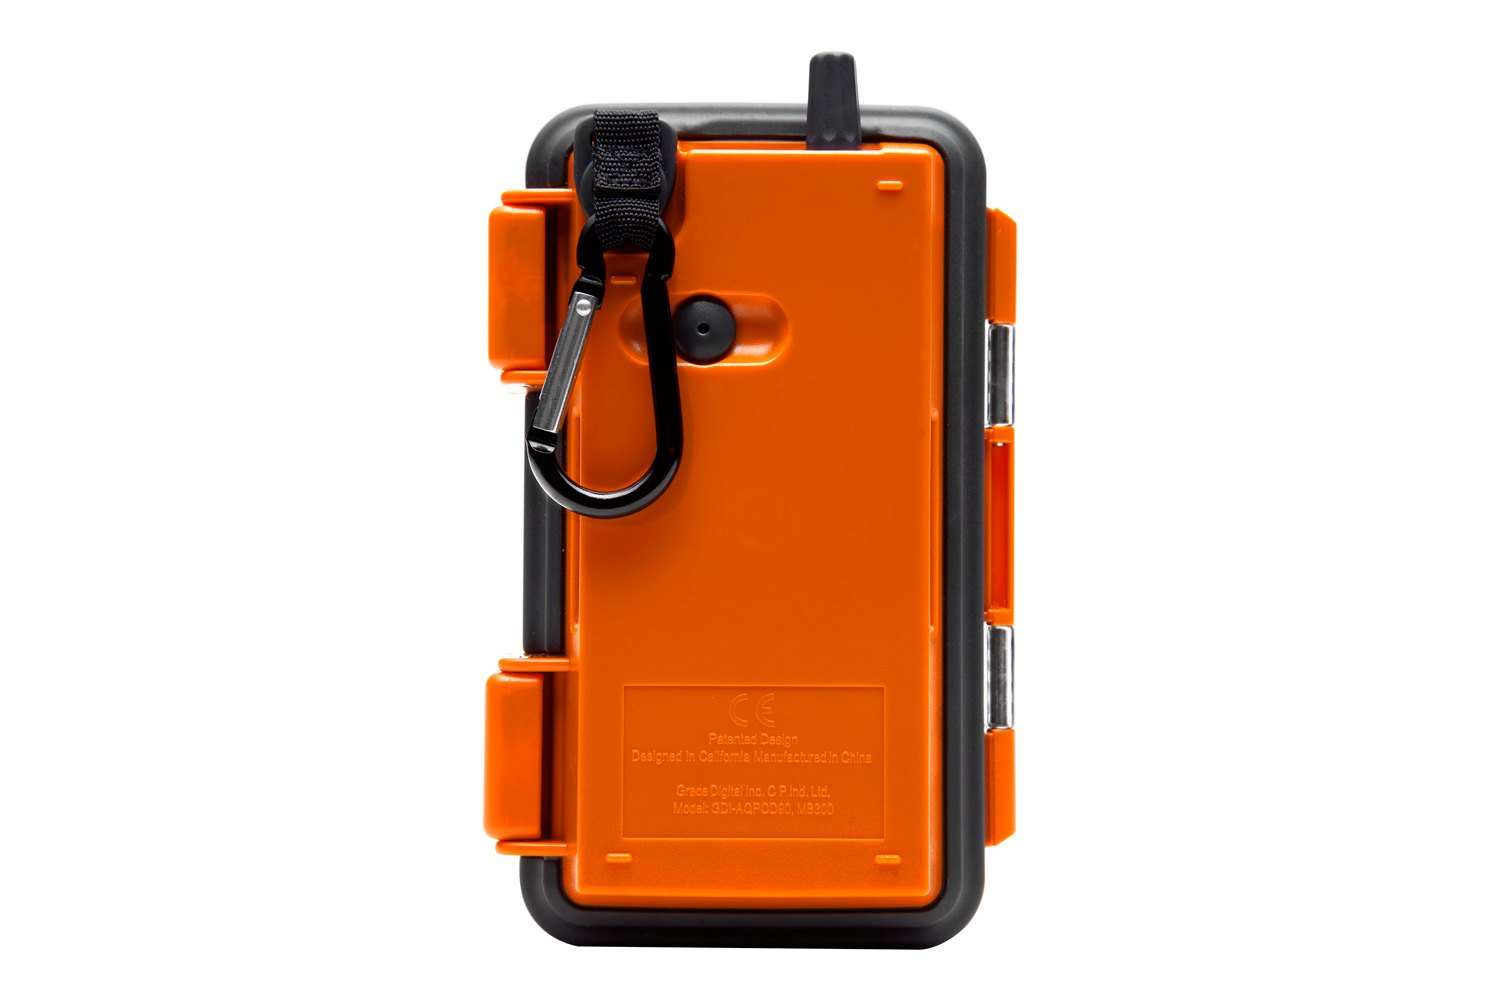 Ecoxgearu00ae GDI-AQPOD90 - ECOPODu2122 Waterproof Cell Phone Case, Orange